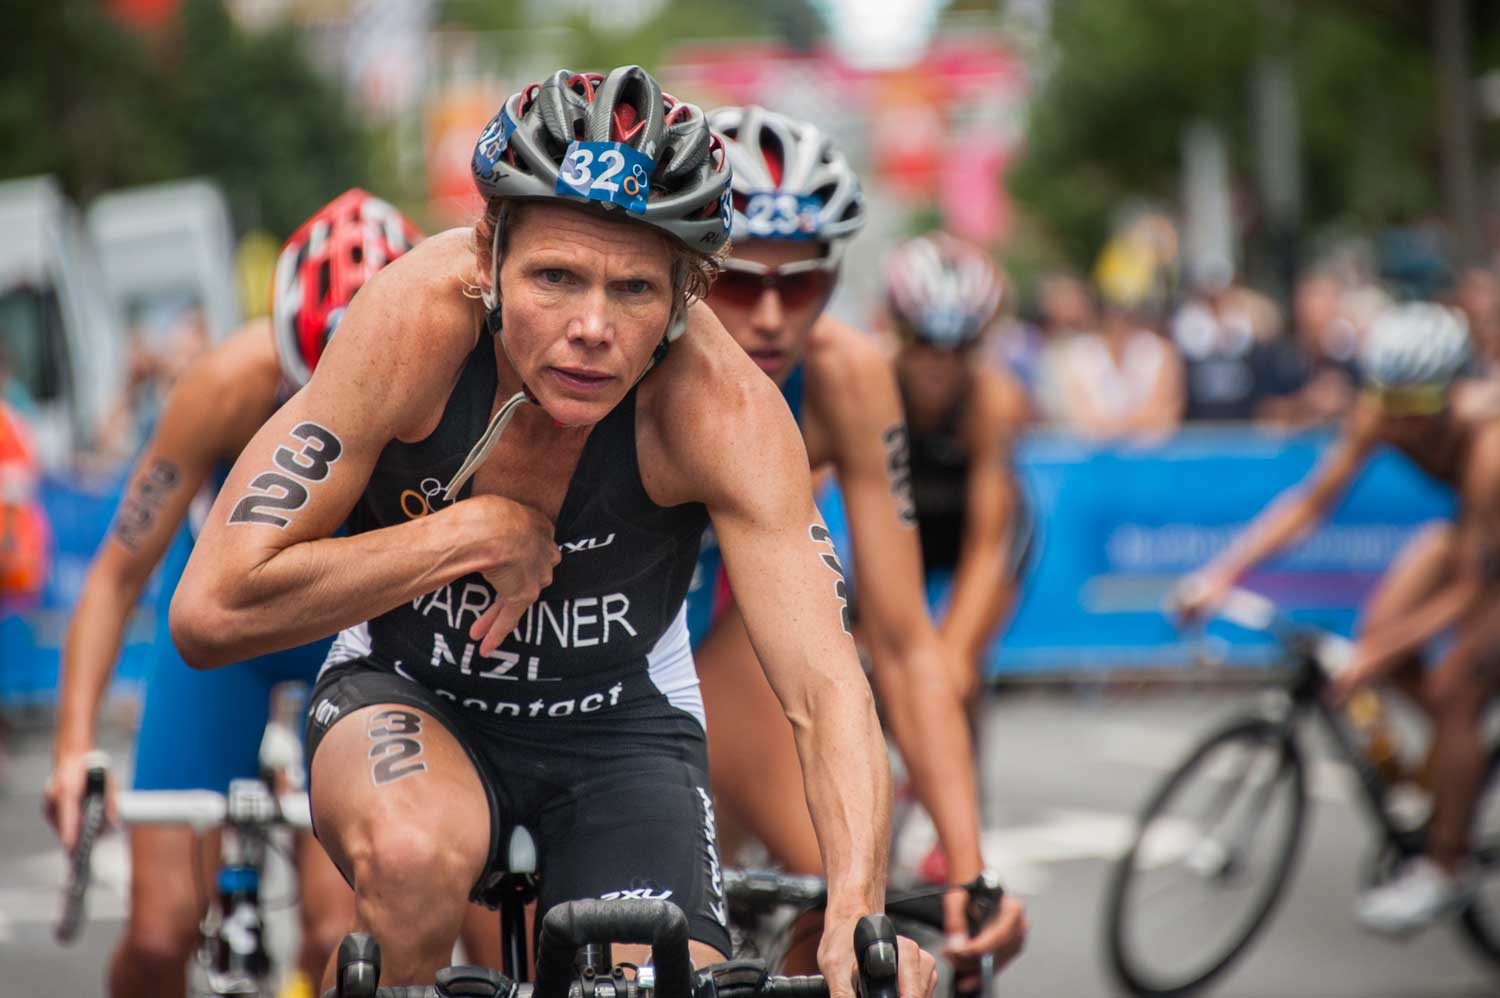 Samantha Warriner in her return to ITU competition, aged 41.